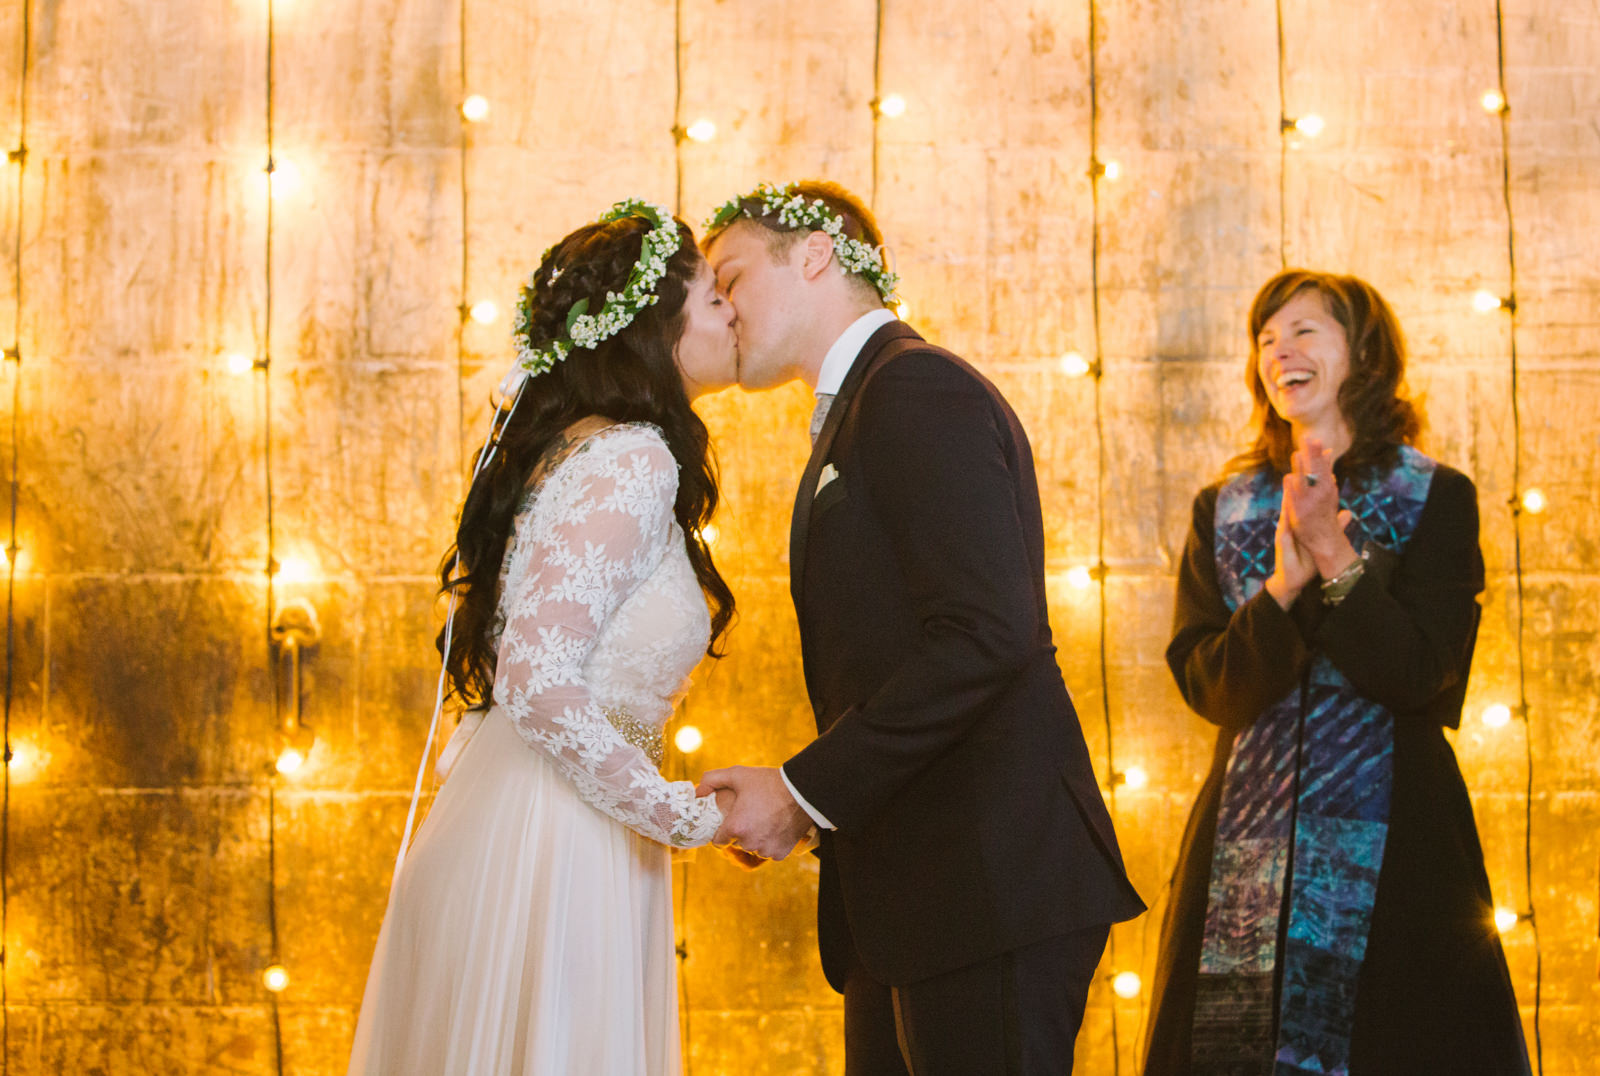 a bride and groom kiss at their wedding ceremony